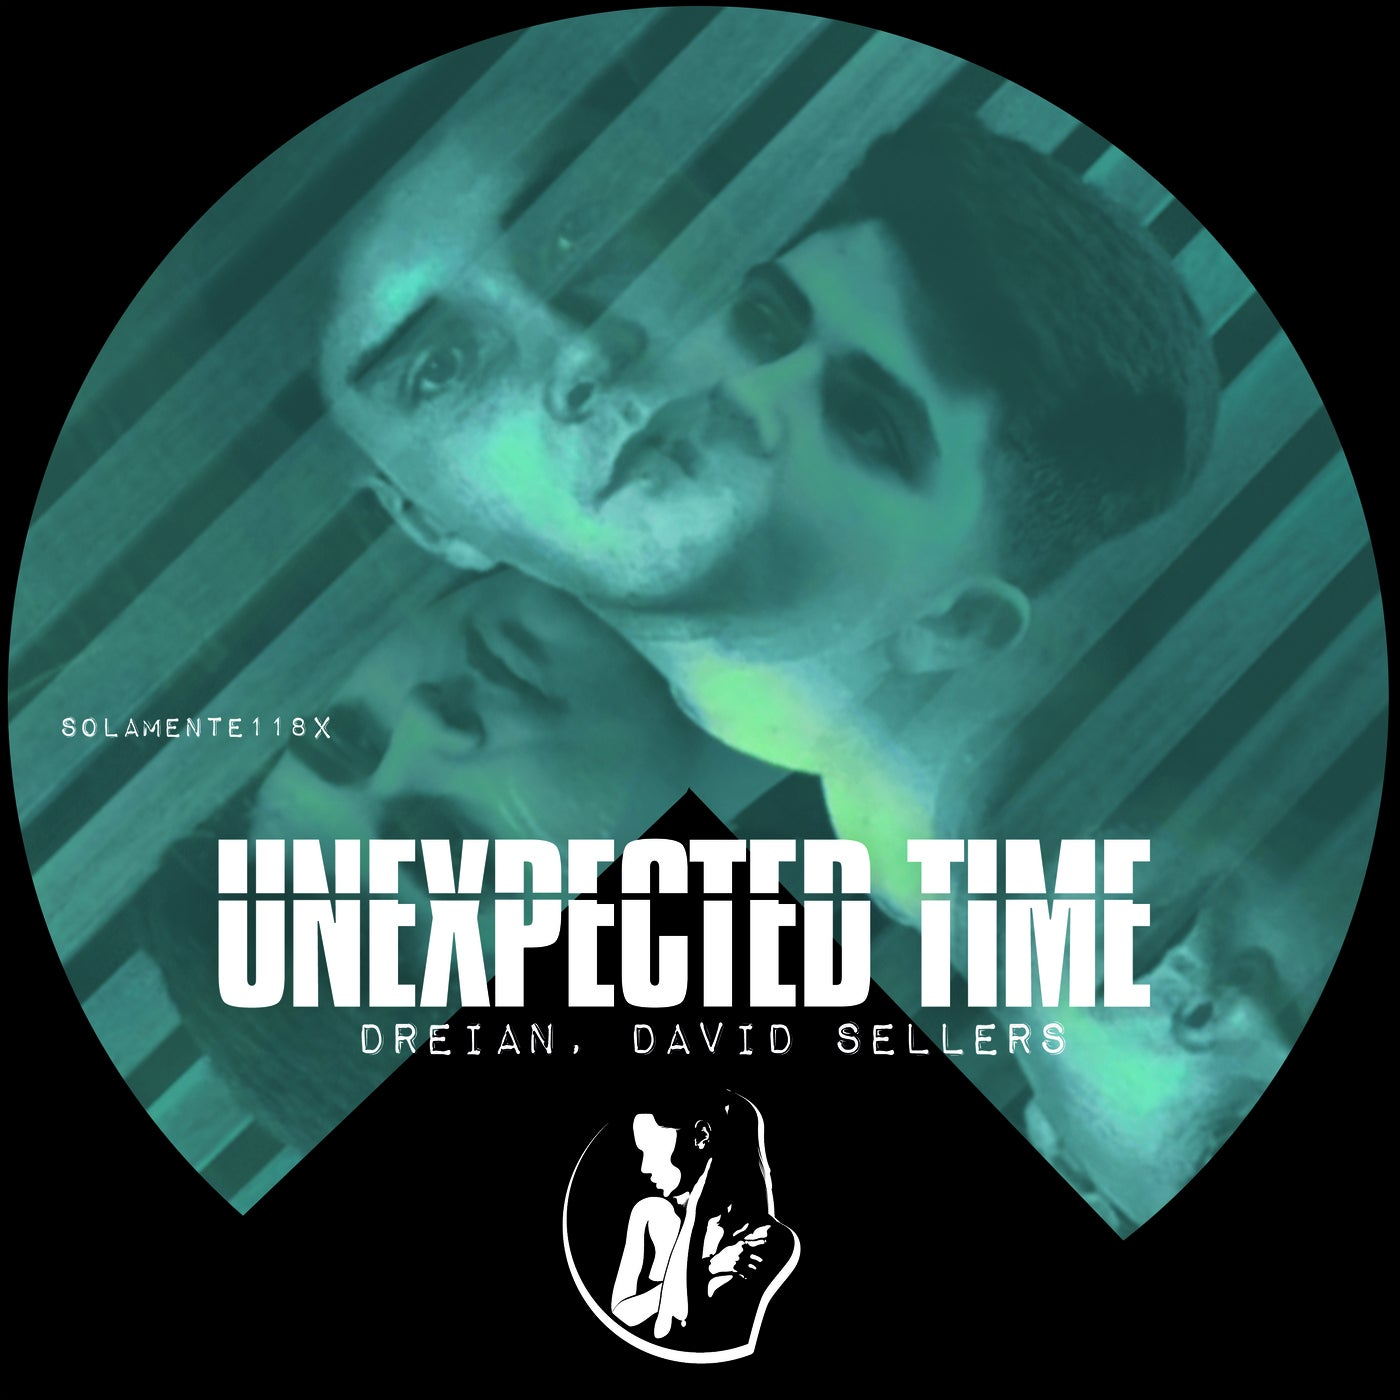 David Sellers - Unexpected Time (2021)